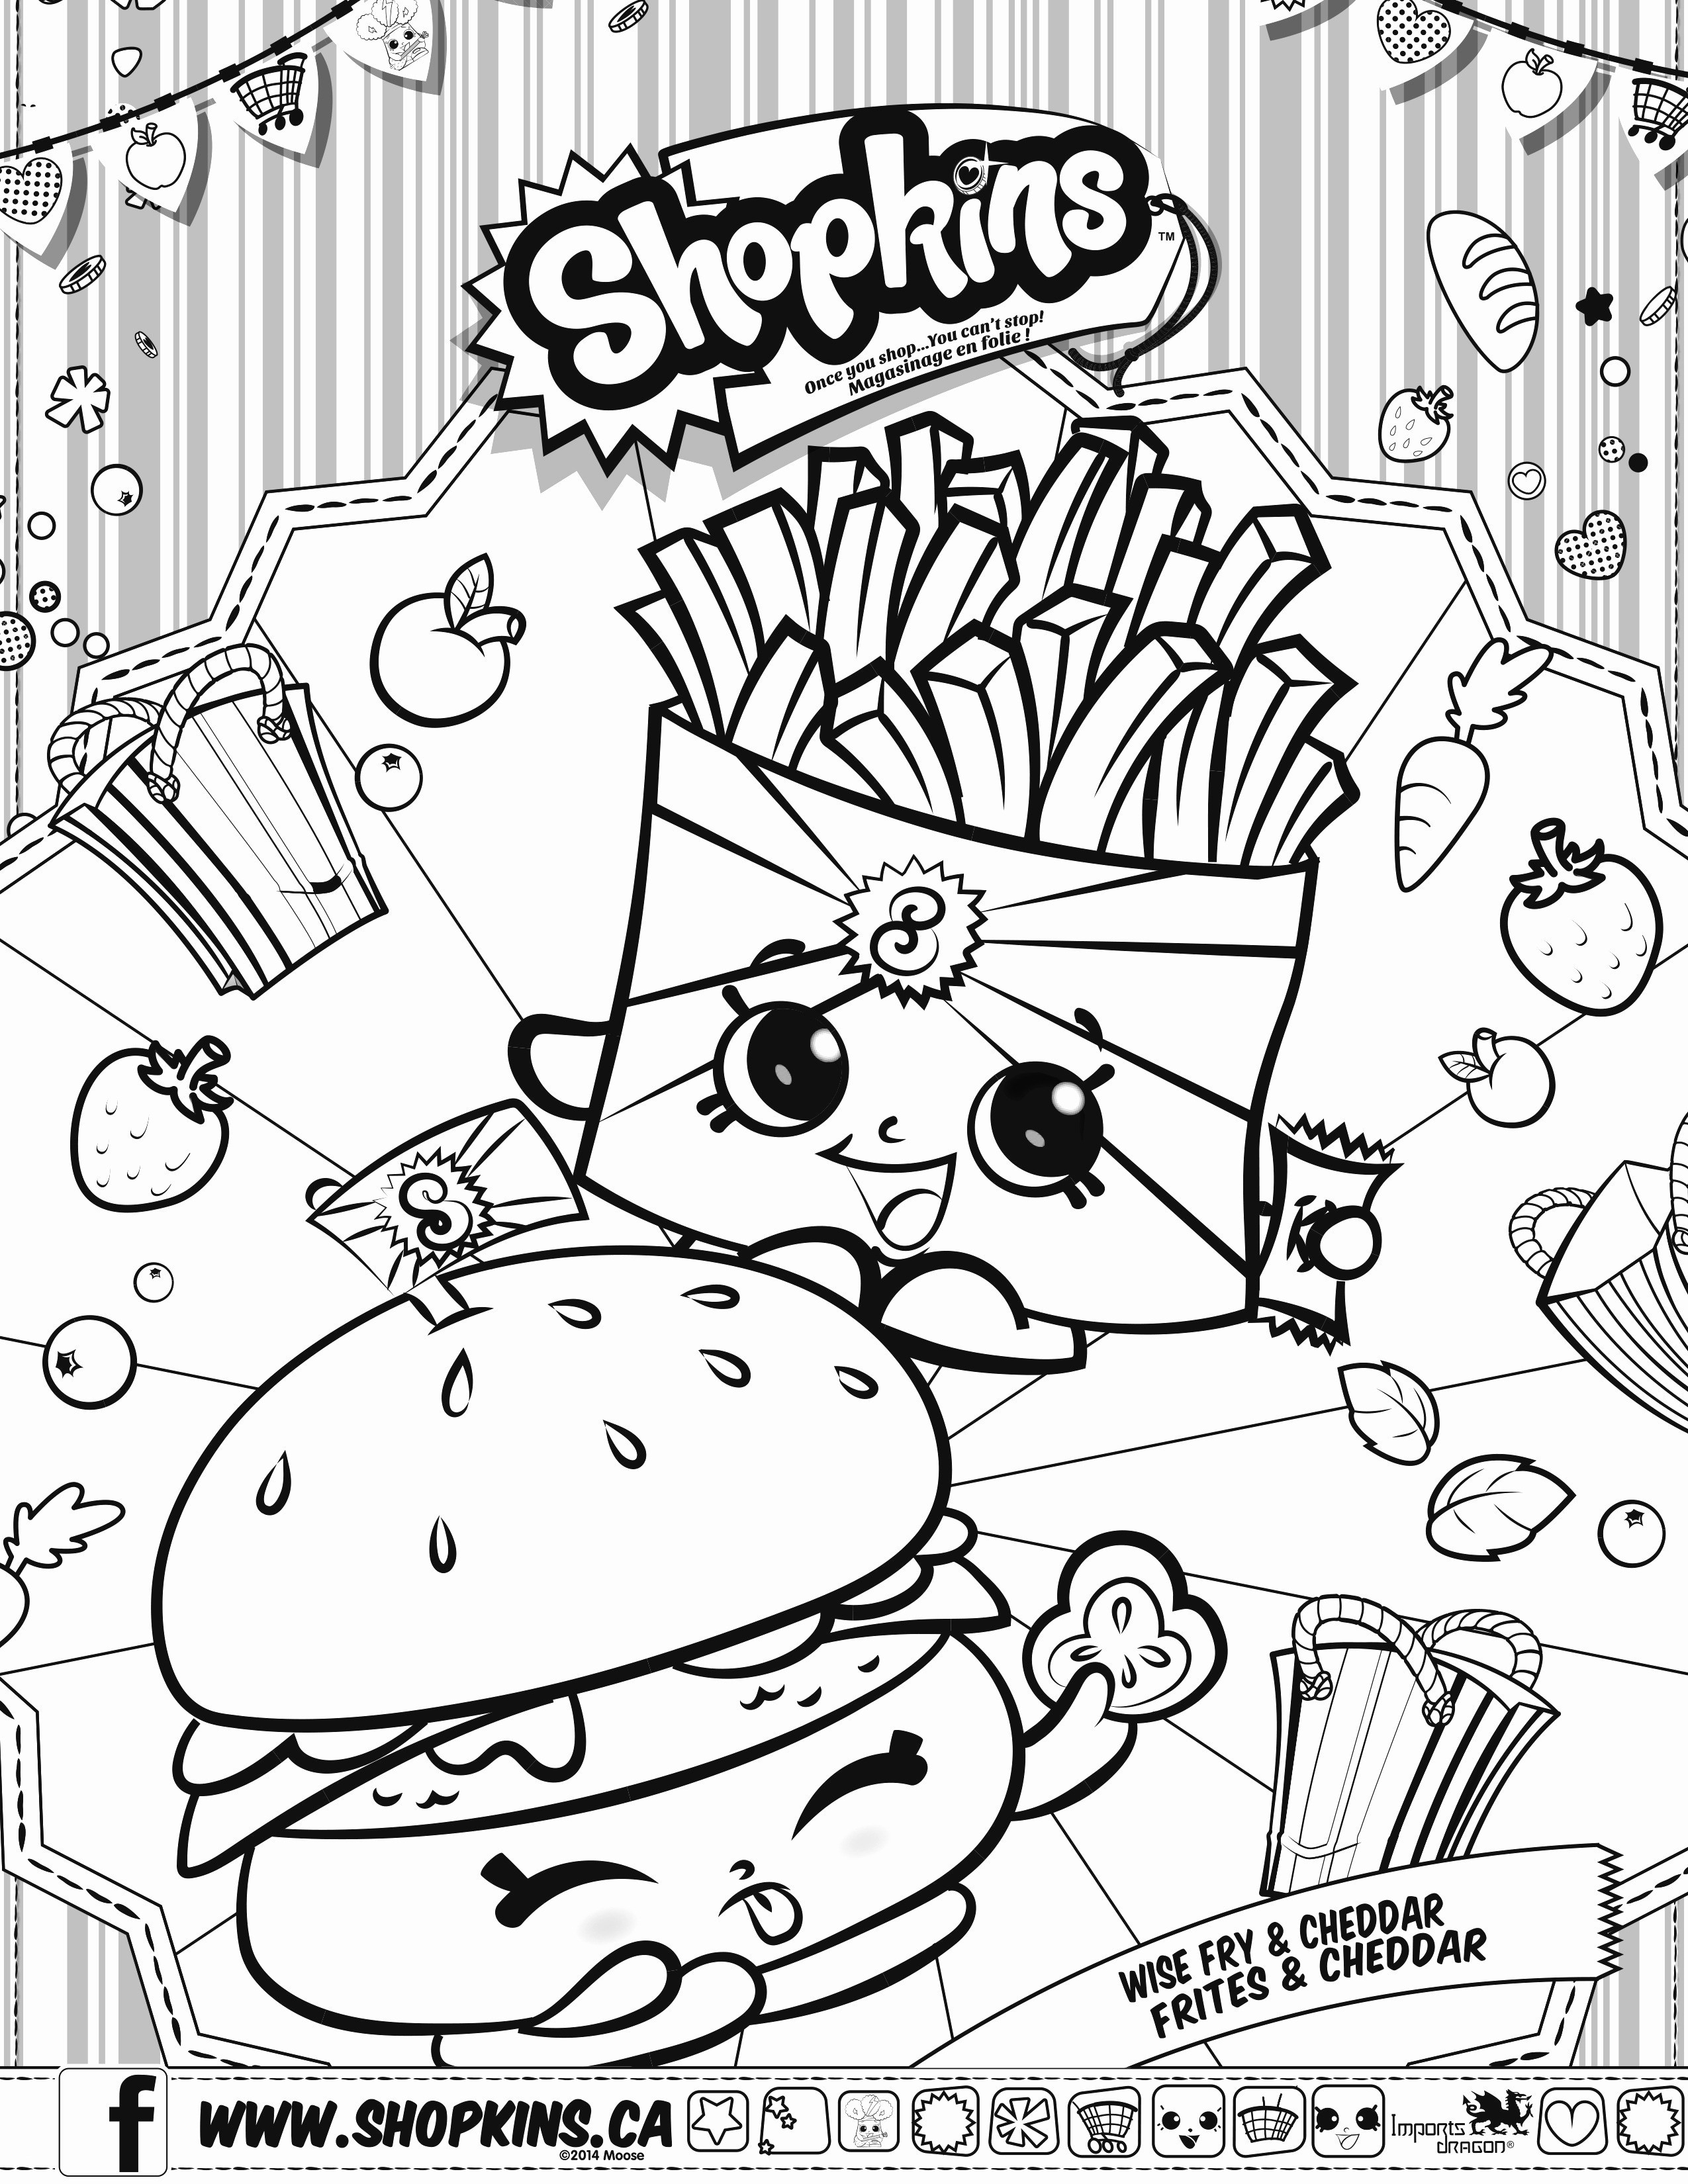 food pyramid coloring pages Collection-Dairy Products Coloring Pages 14 Unique Food Pyramid Coloring Page Gallery 15-m